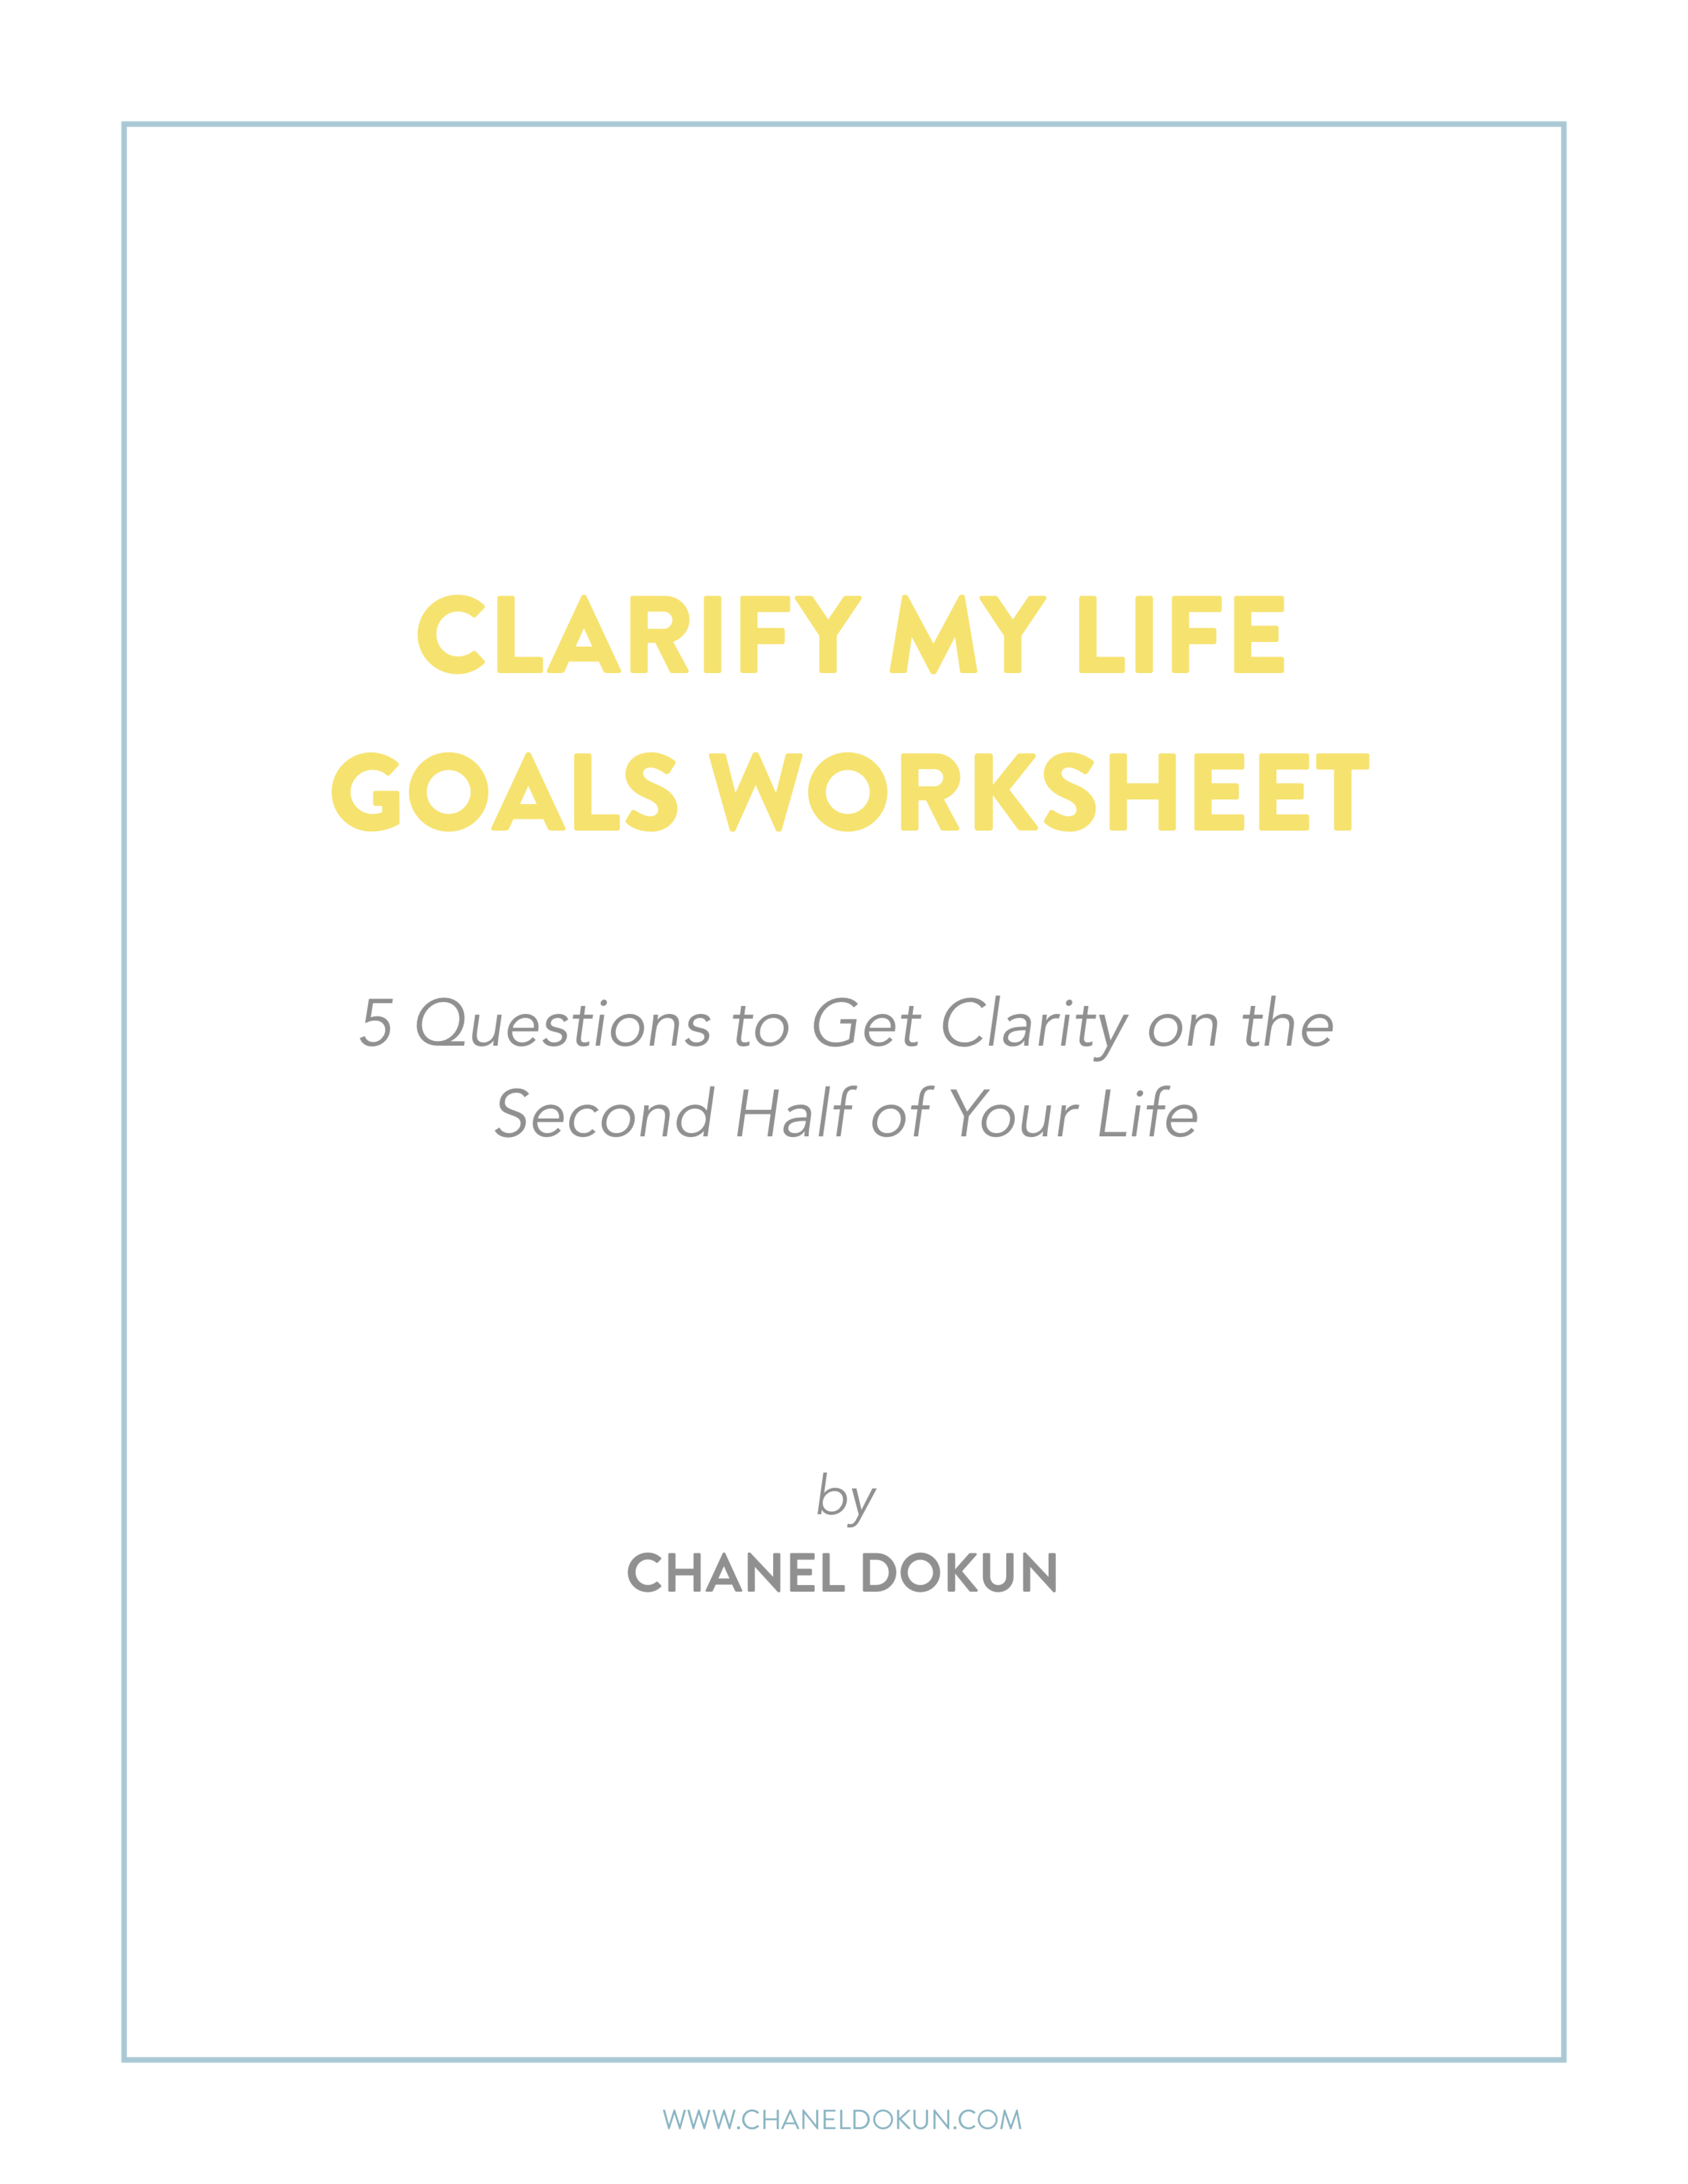 Clarify My Life Goals Worksheet (thumb).png